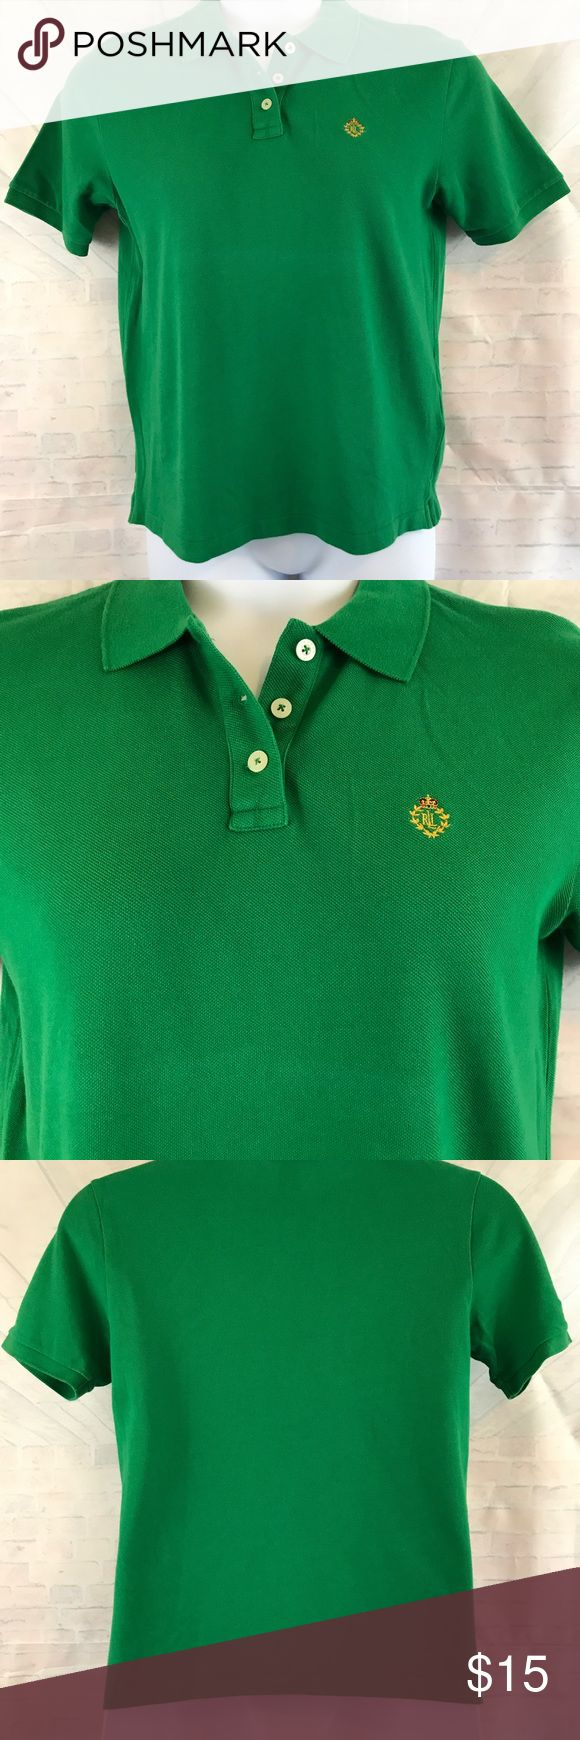 Ralph Lauren Petite Women Size PM Polo Green Shirt New with tags. Retail $39.50 Ralph Lauren Petite Women Size PM Polo Shirt. Short Sleeve.  Green.  Made of 100% Cotton. Chest approximately 40 inches and length approximately 24 1/4 inches.  Please visit our Store for a great selection of items. We also have a large selection of over 1,000+ PLUS! Buy with confidence with our 3K+ Feedbacks. Measurements are approximate. Your business is appreciated. Thank you, Polo by Ralph Lauren Tops Tees…